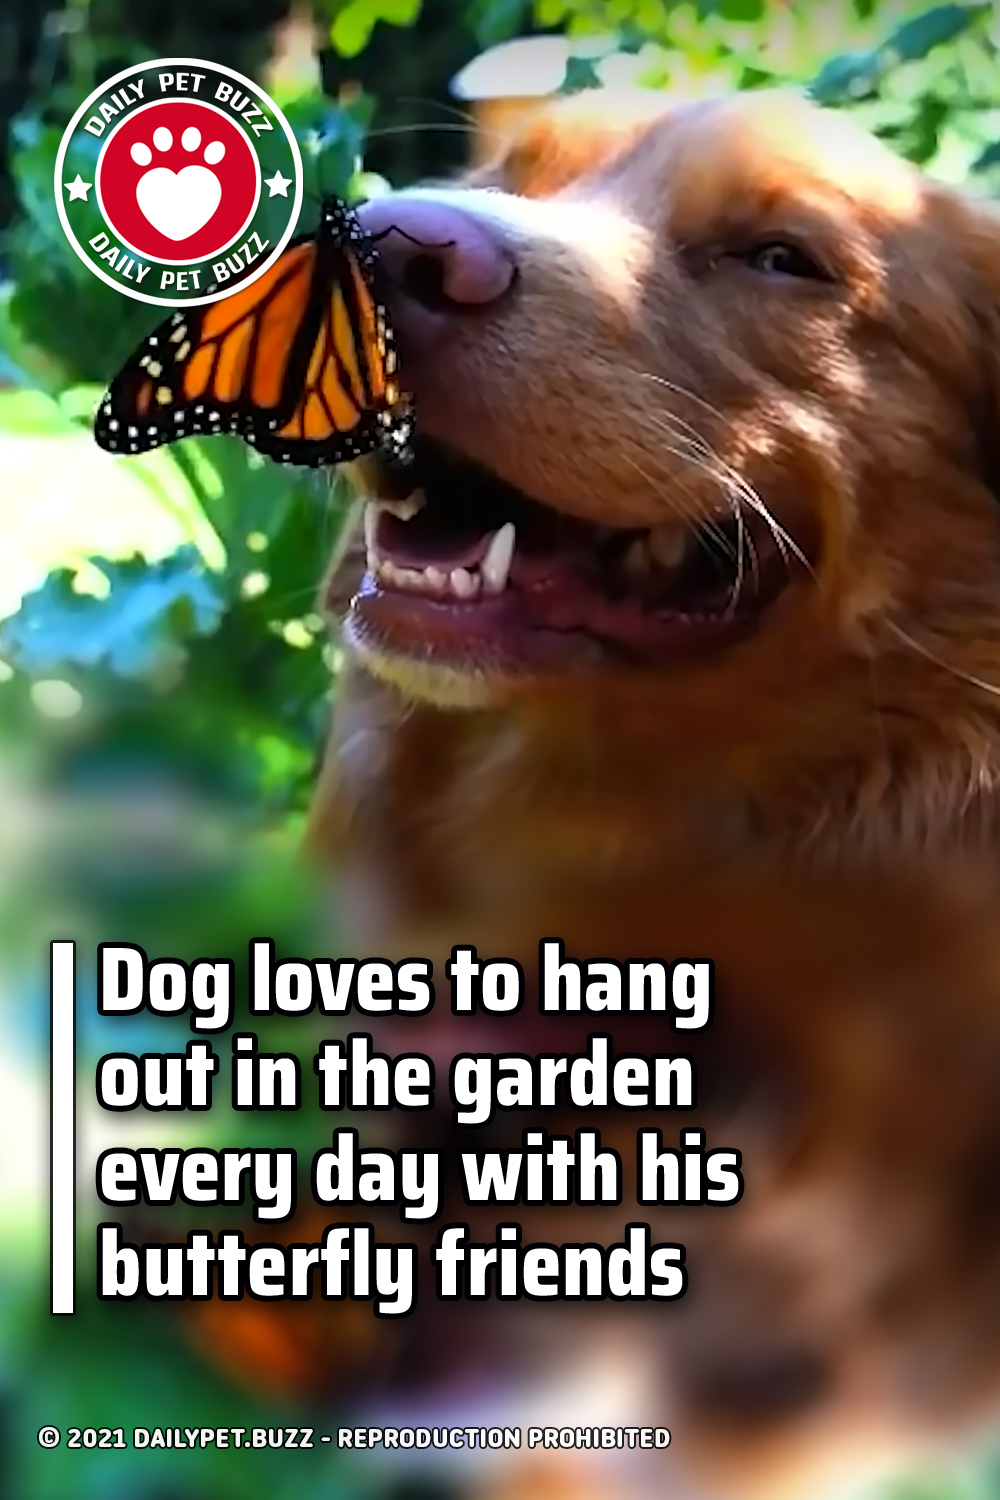 Dog loves to hang out in the garden every day with his butterfly friends